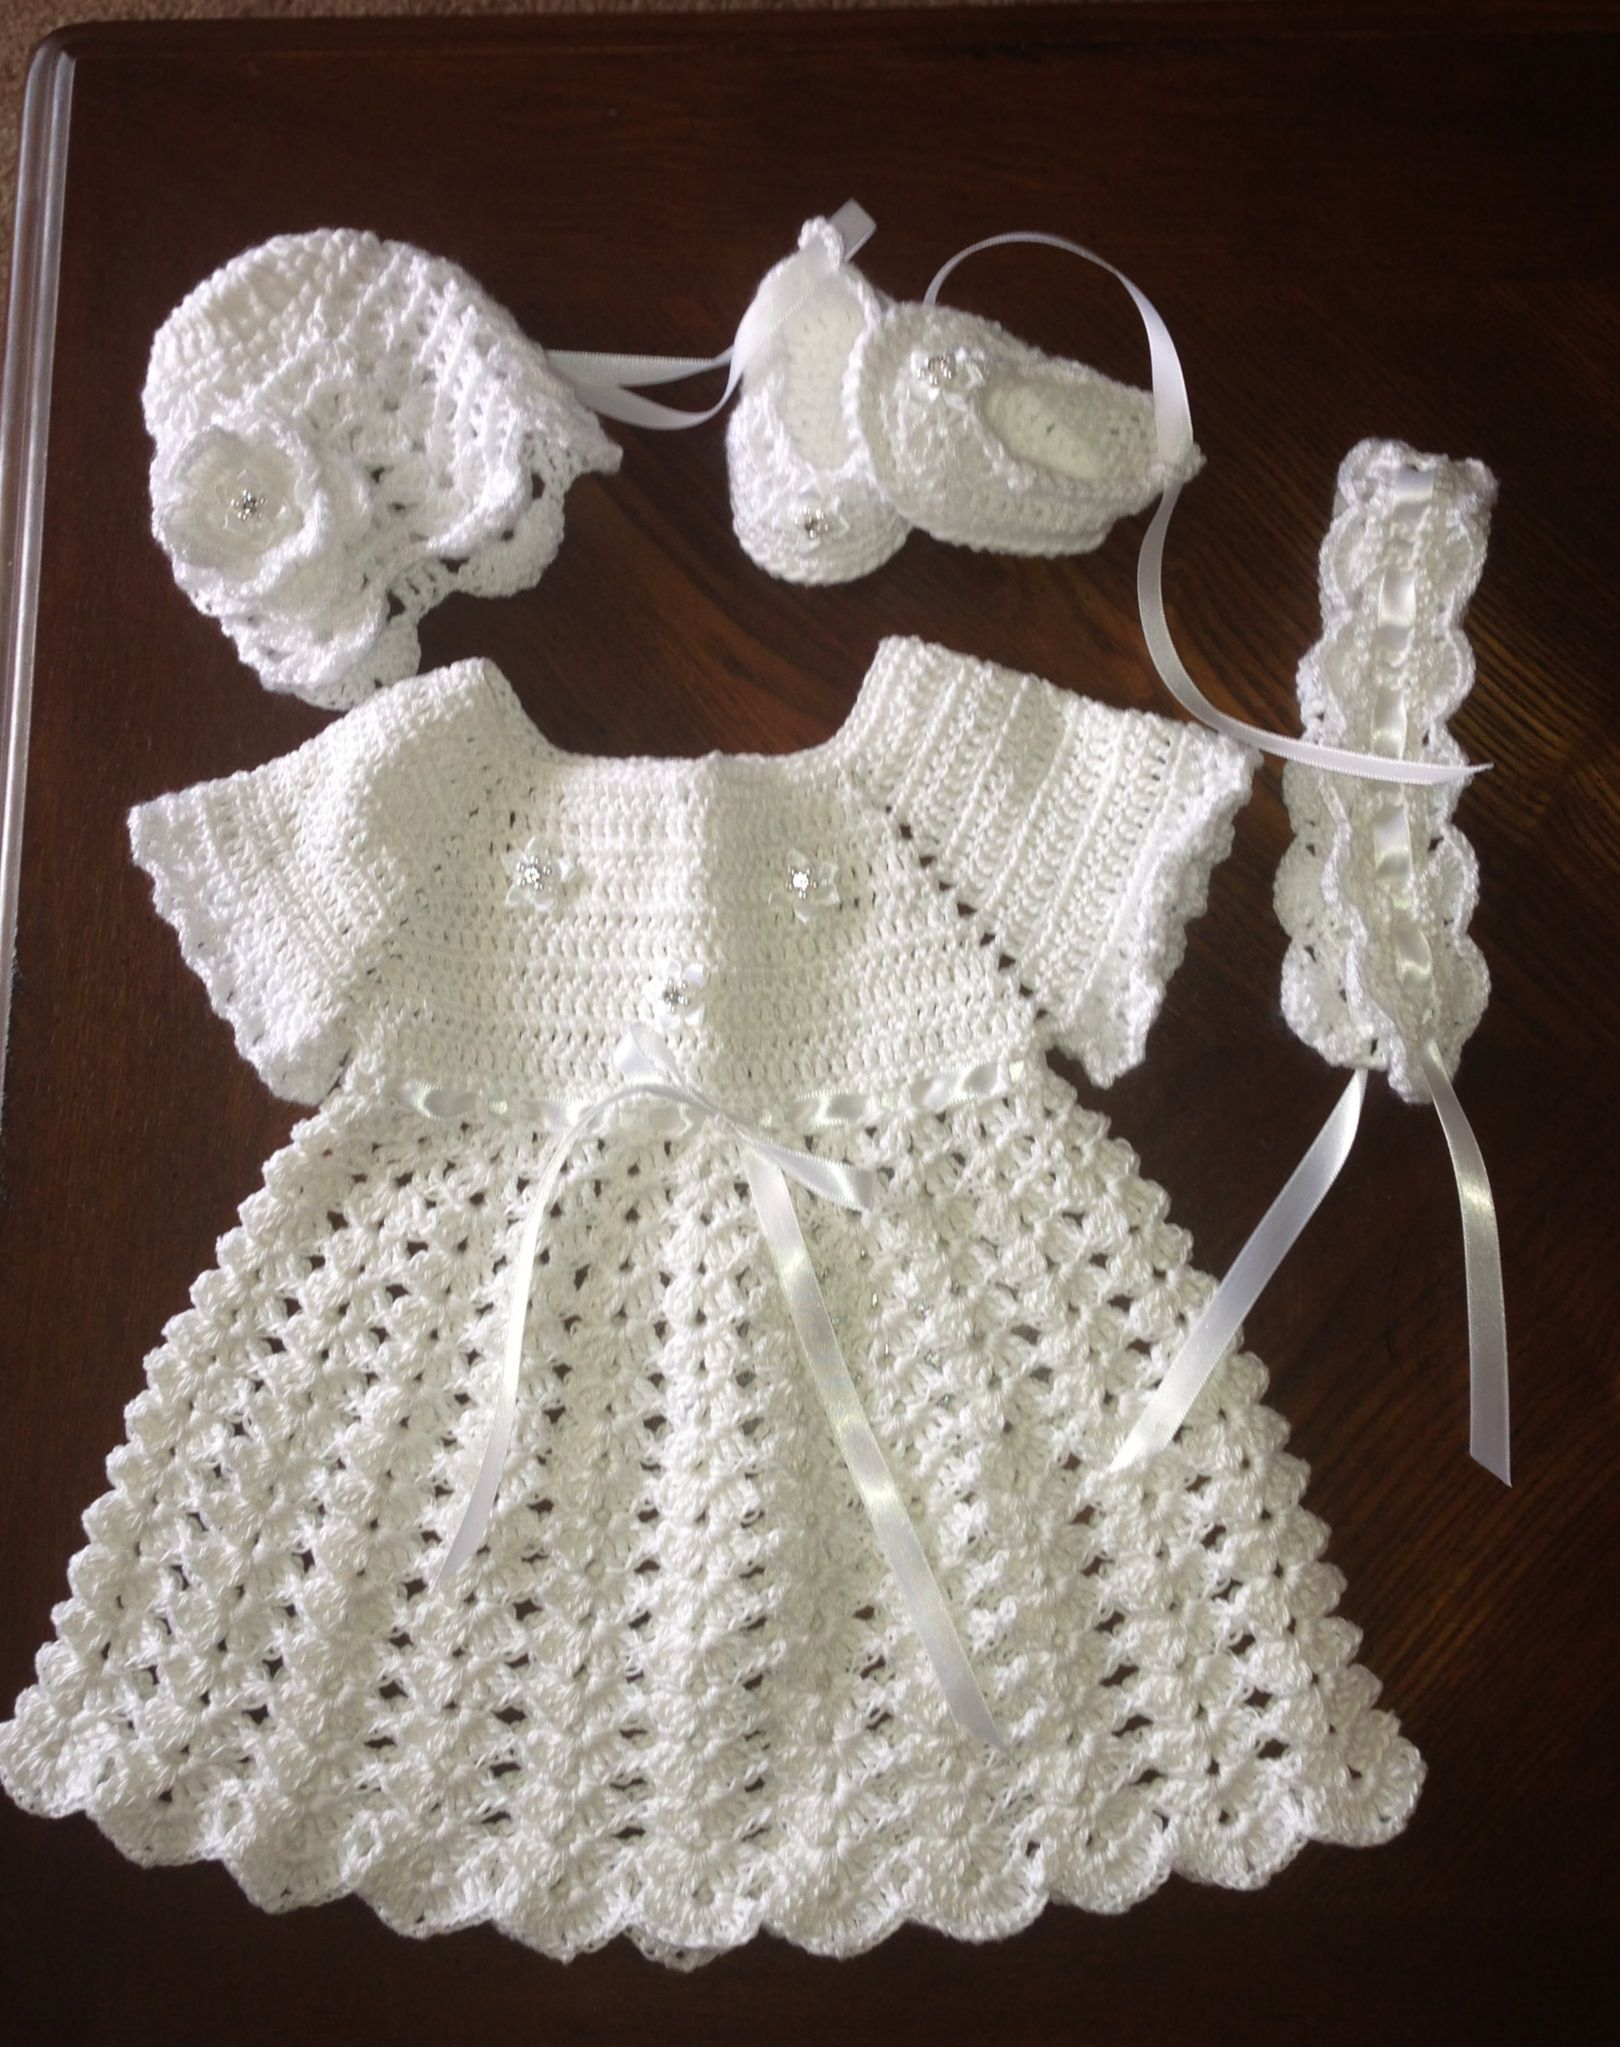 Pin By Ivonne Gastulo On My Designers Baby Creations Dress Hat Headband And Scarves The Crochet Crochet Baby Clothes Crochet Baby Dress Baby Girl Crochet [ 2047 x 1620 Pixel ]